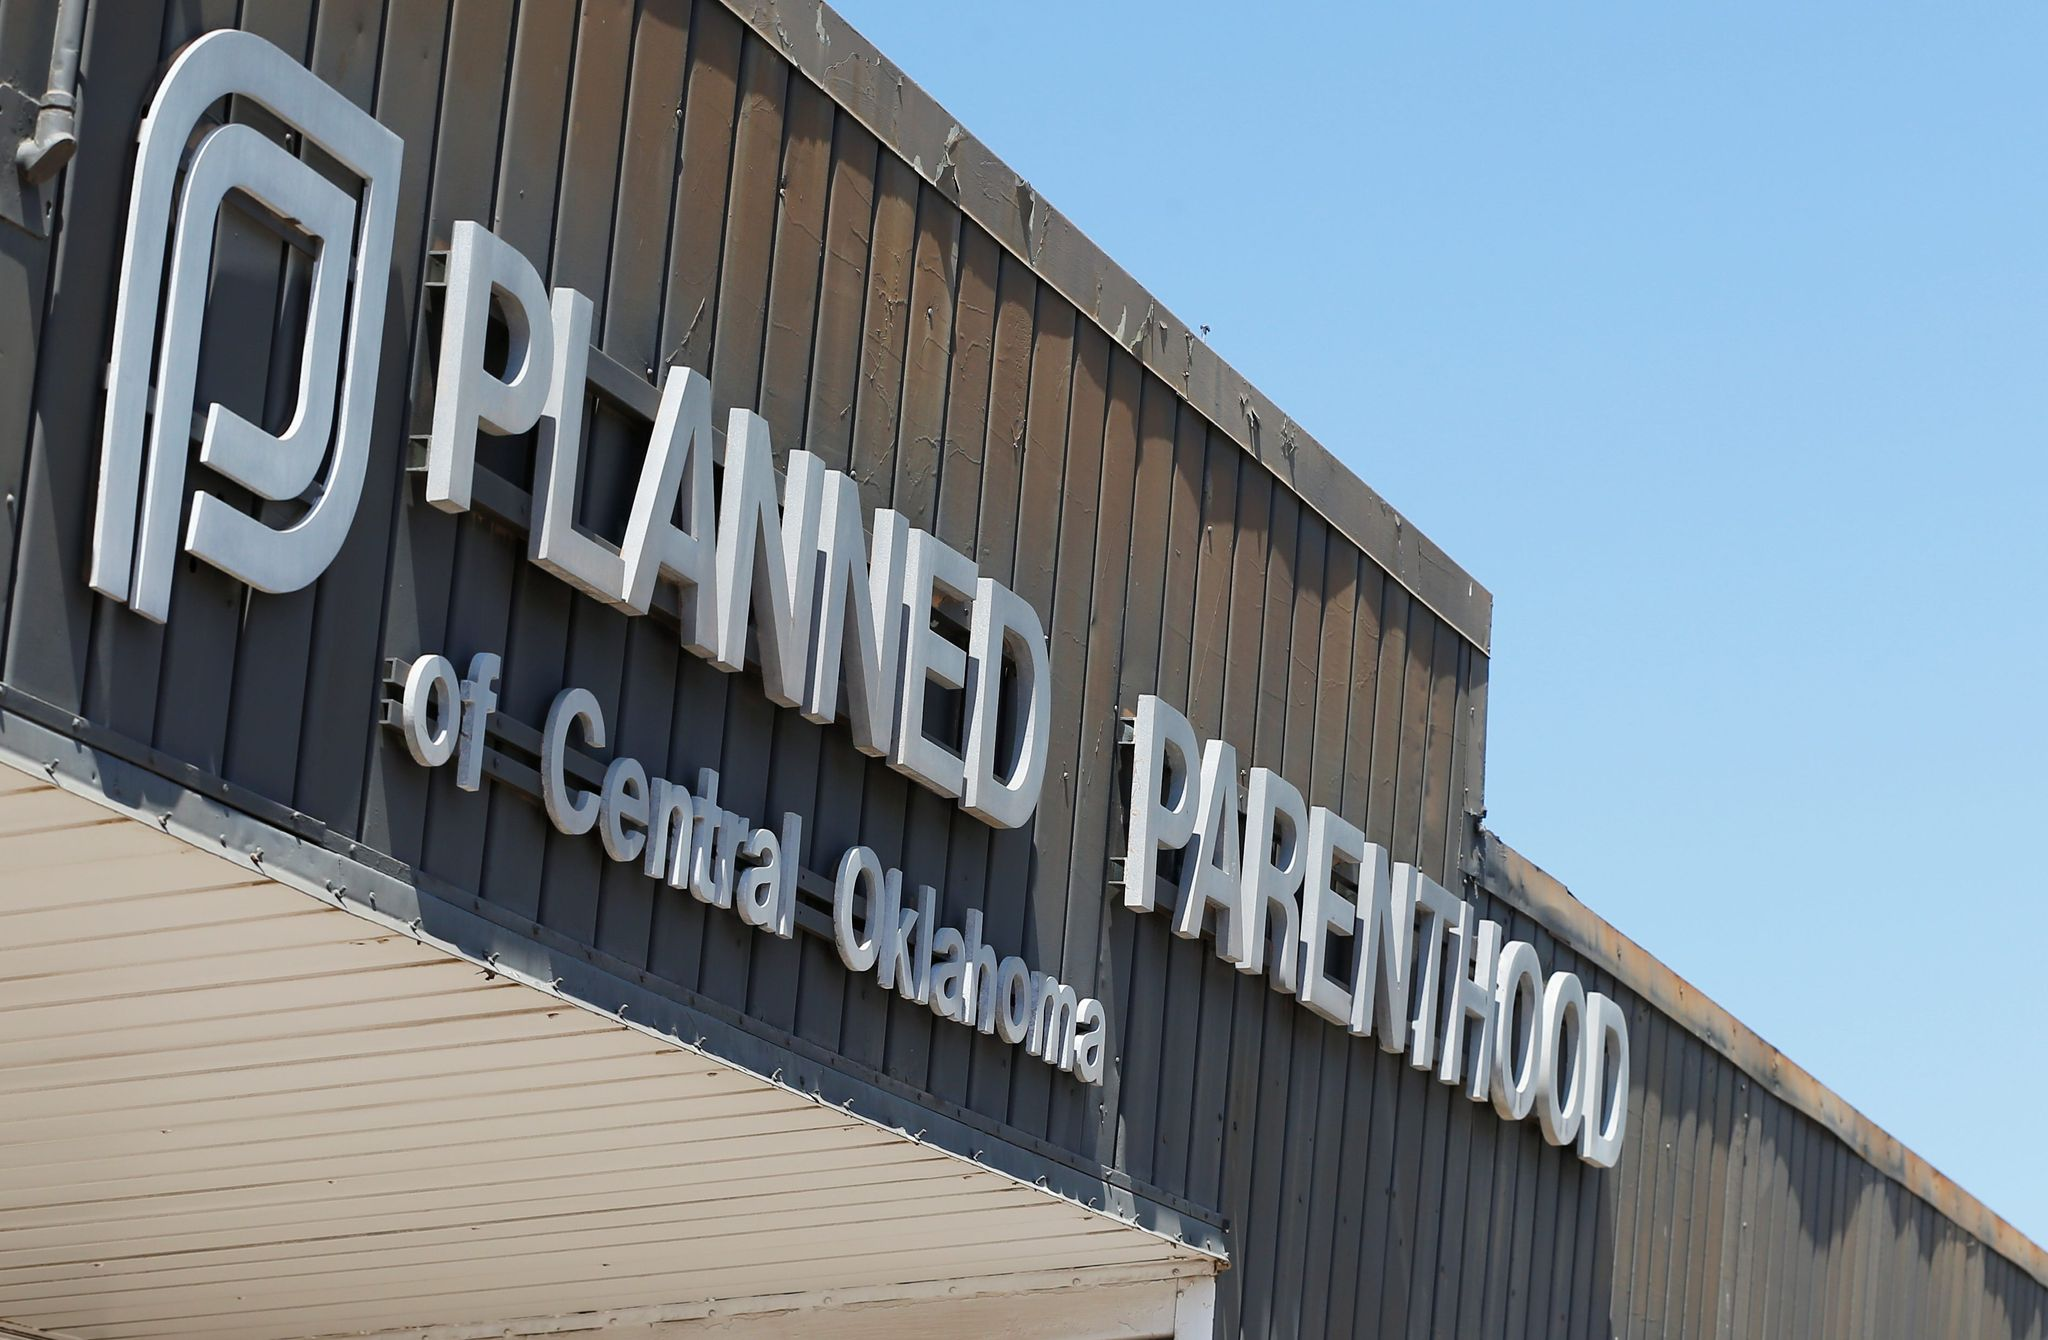 planned parenthood failed to take sex trafficking seriously after infamous sting ex employee says washington times